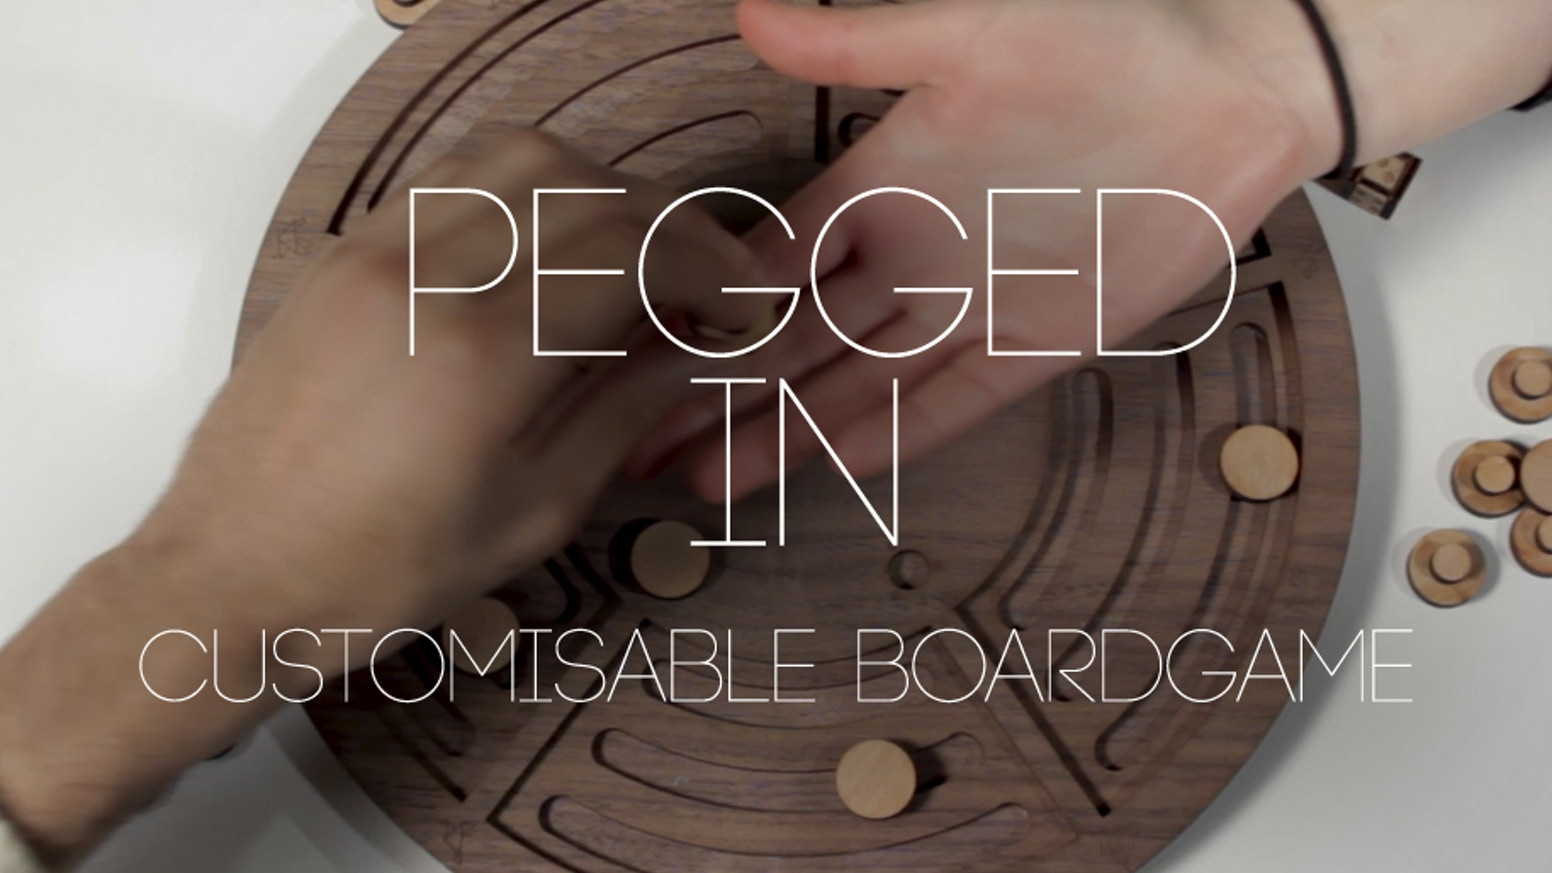 Pegged In is a fun and dynamic customisable board game appropriate for all ages and ideal for both family and friends.